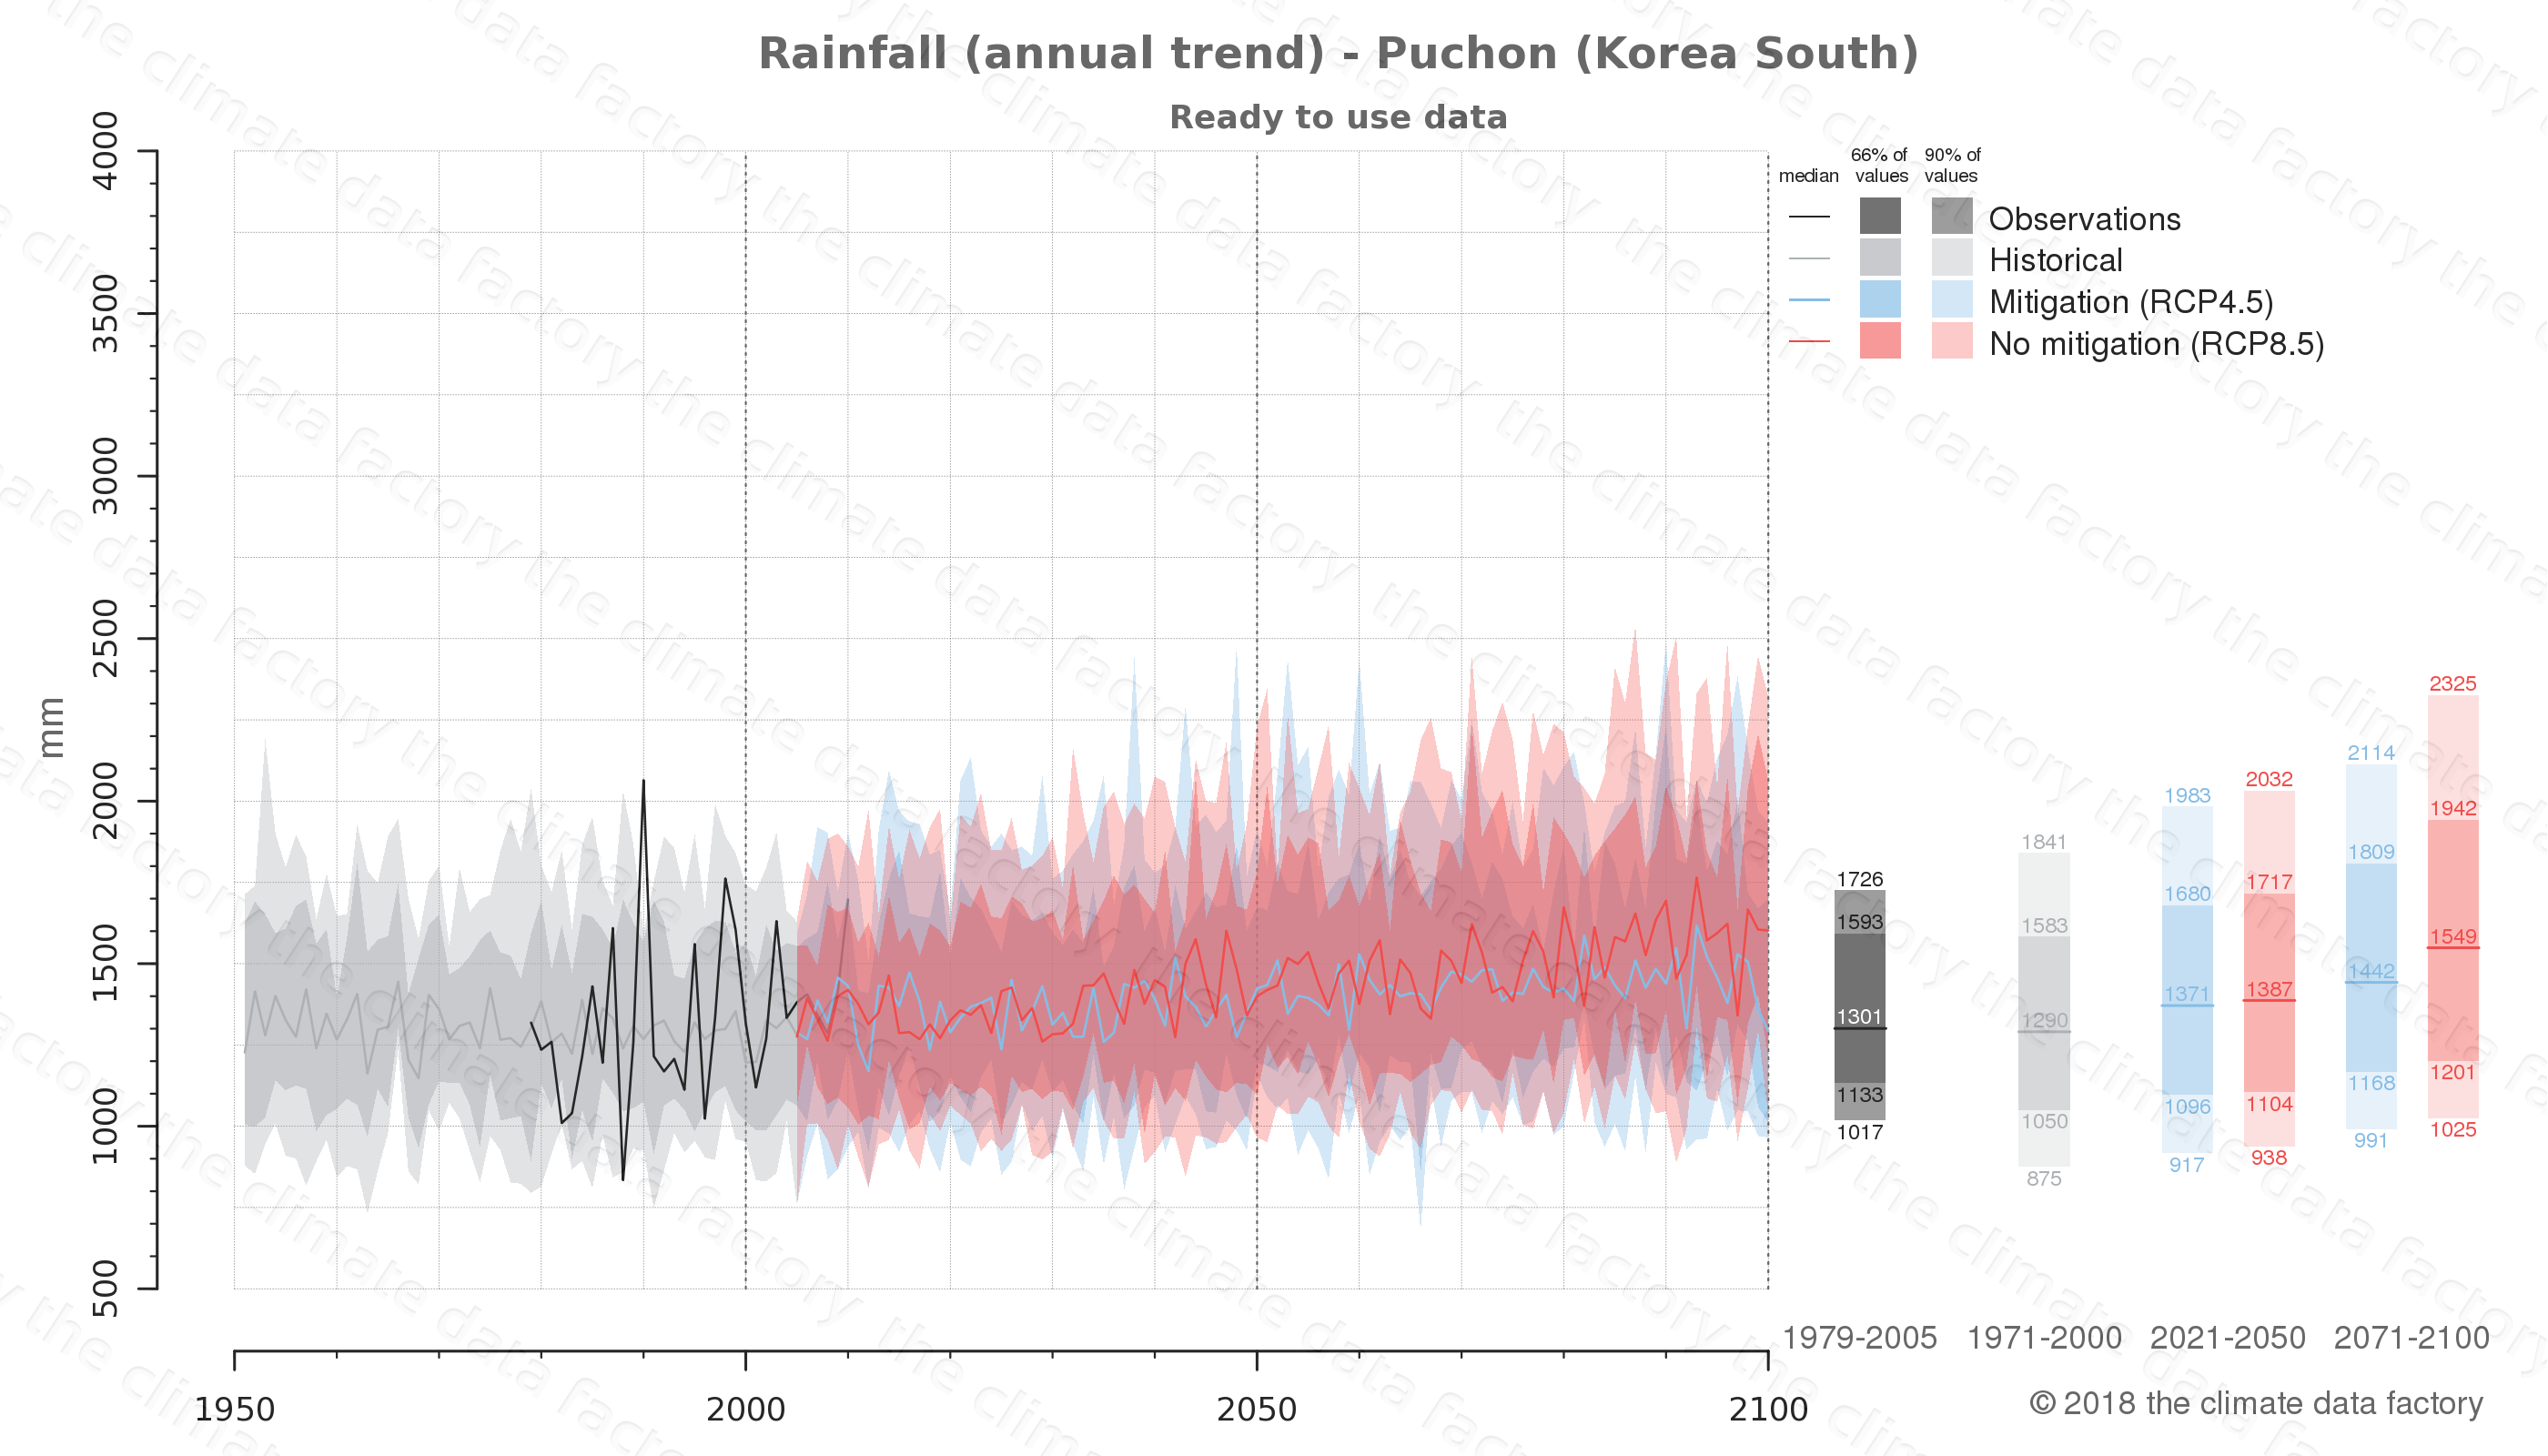 climate change data policy adaptation climate graph city data rainfall puchon south korea